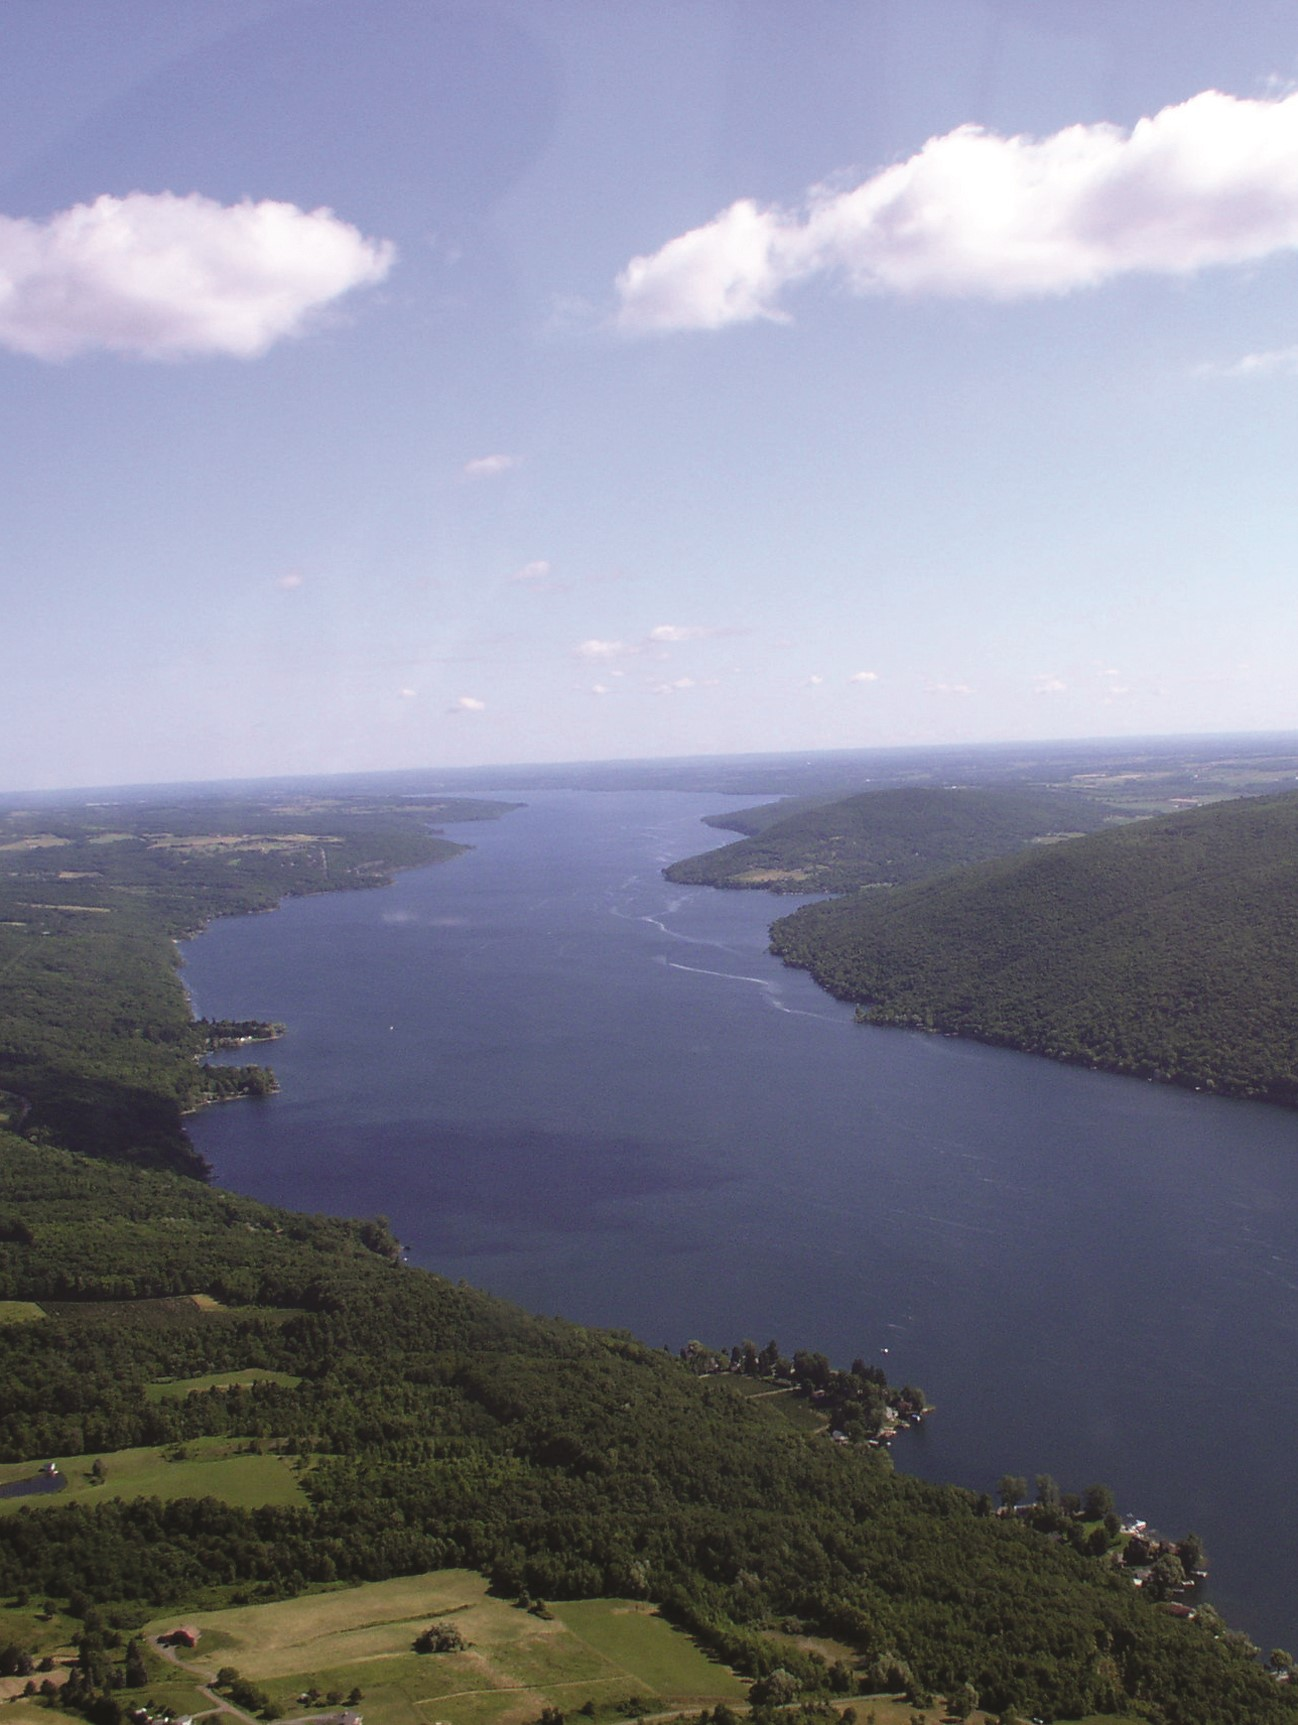 Canandaigua Lake - looking North